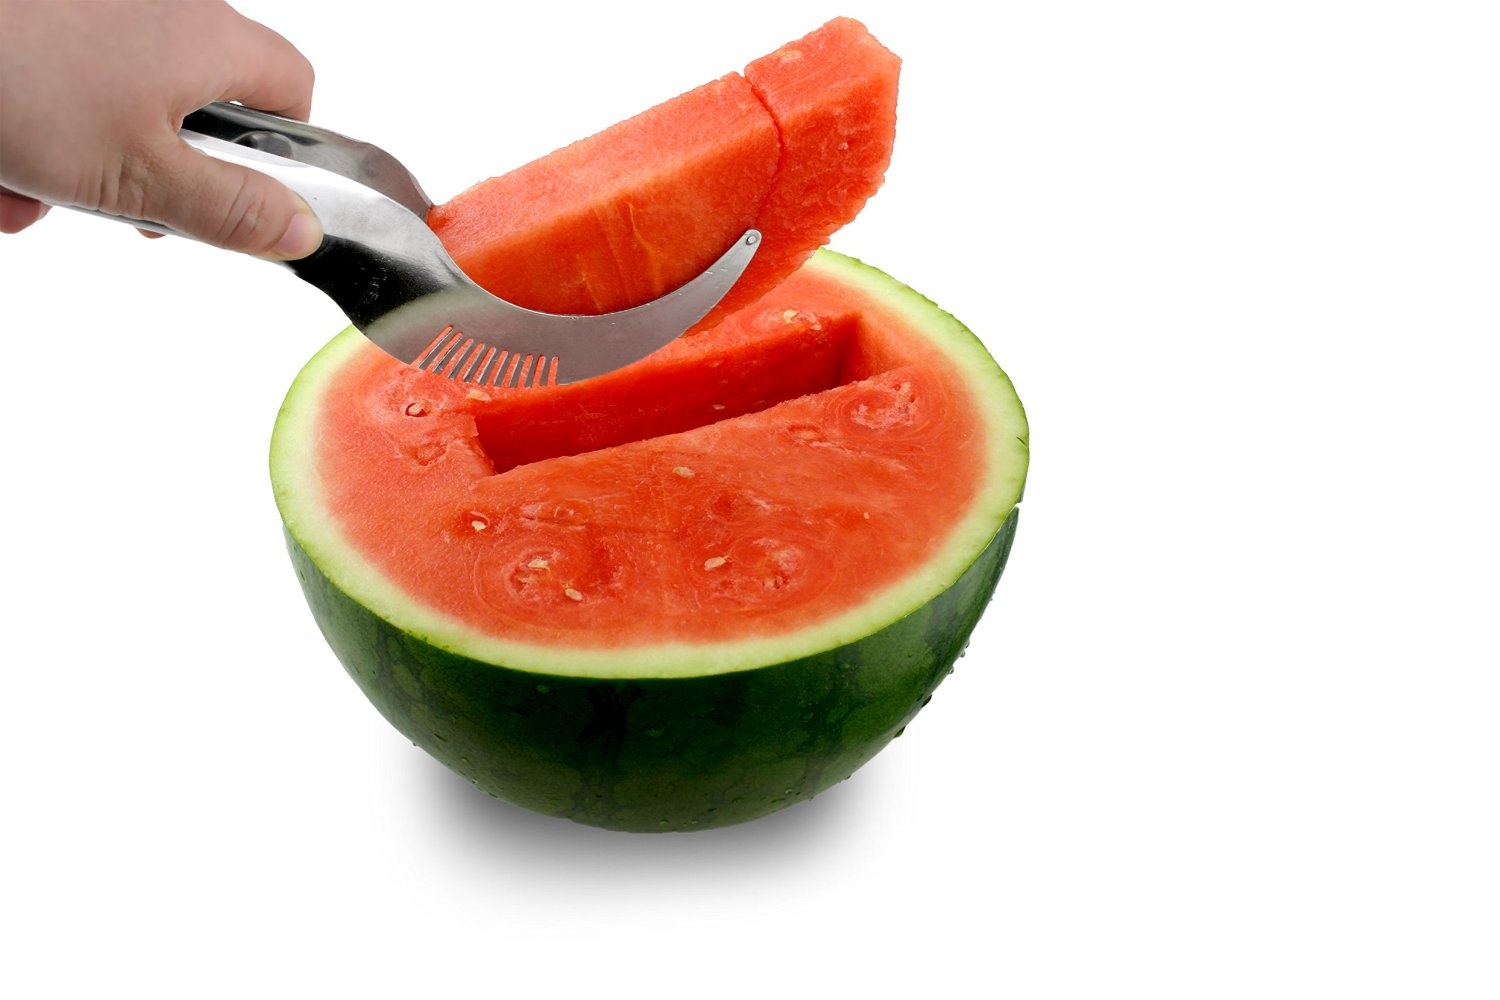 Stainless Steel Watermelon Knife Cutter Slicer Kitchen Tool Home Utensil Server